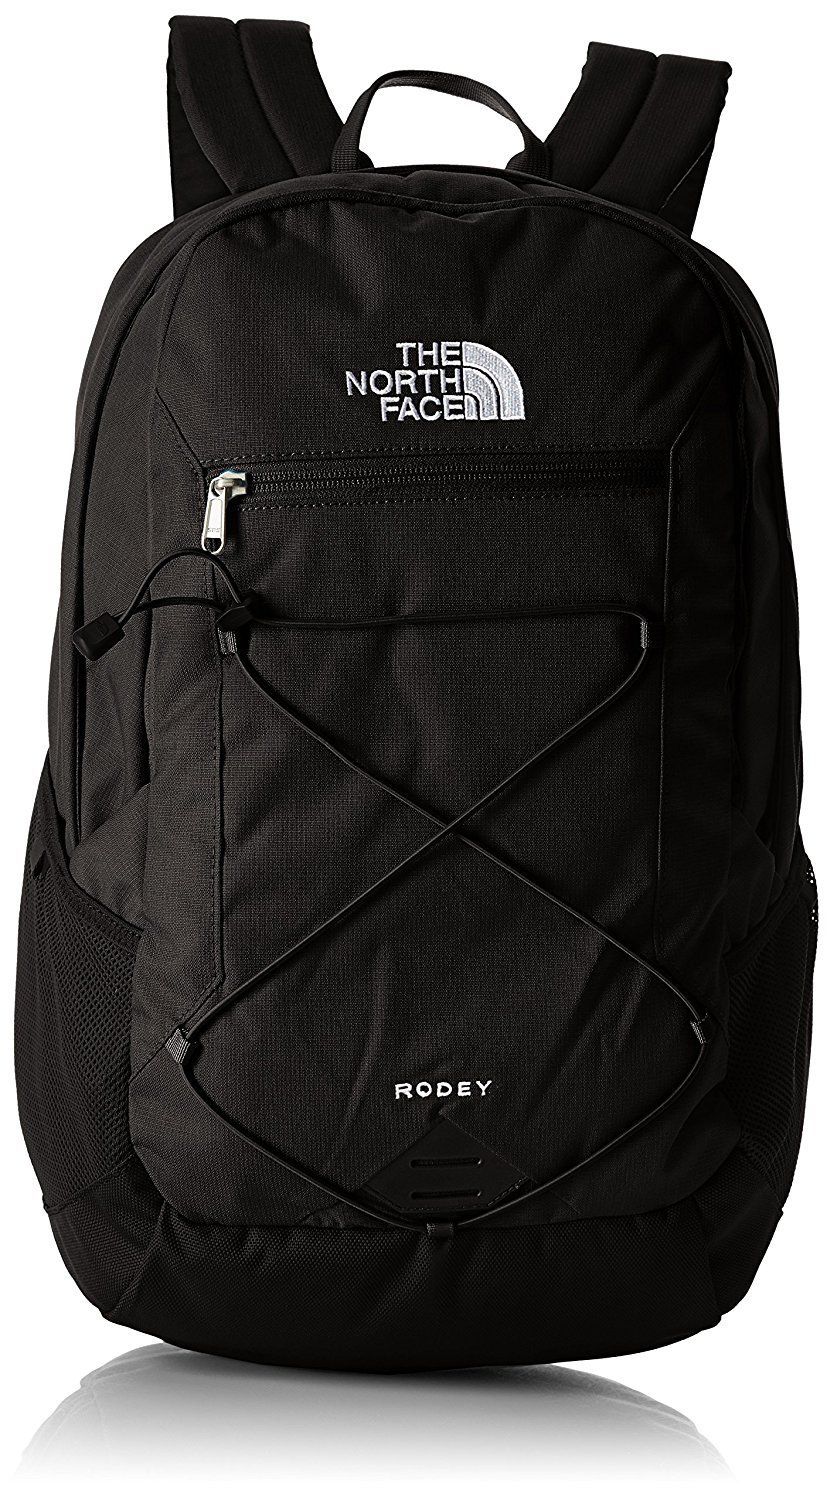 Backpack Dos MixteBagages Rodey À Face Sac The North qSpUzMV